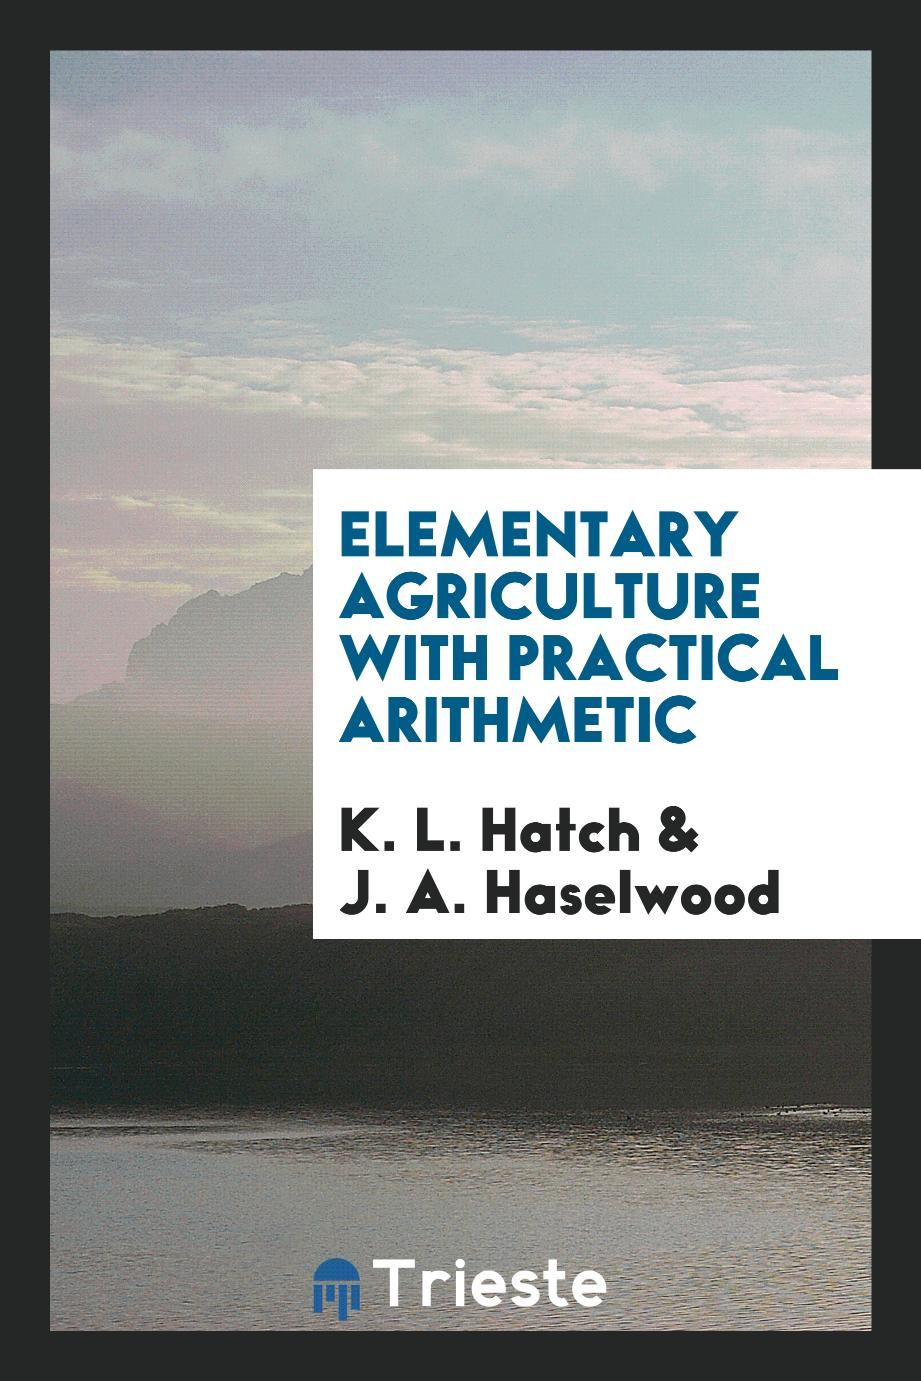 K. L. Hatch, J. A. Haselwood - Elementary agriculture with practical arithmetic